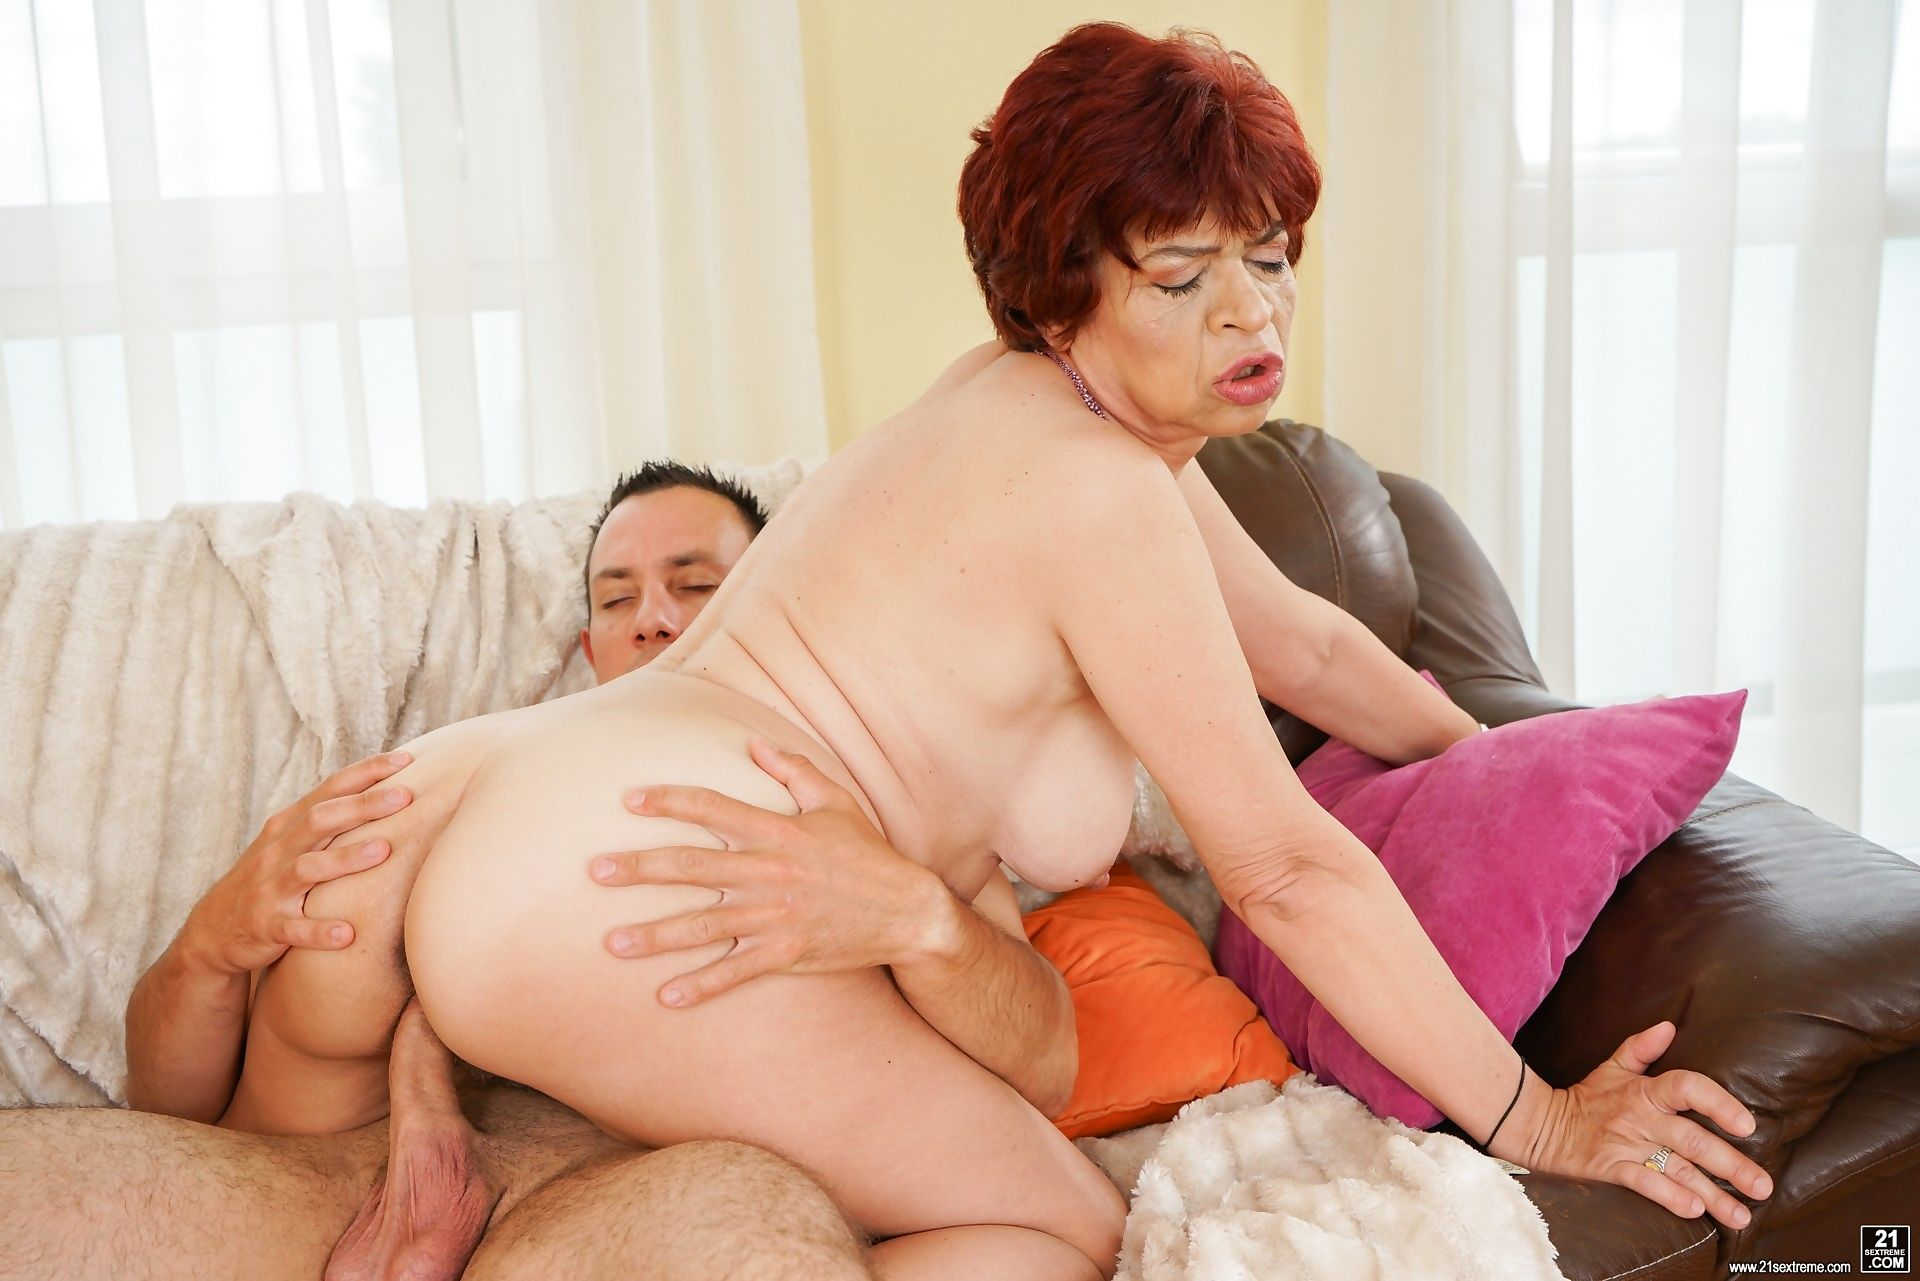 Lusty grandma donatella gently teases him before going down for a taste - part 2285